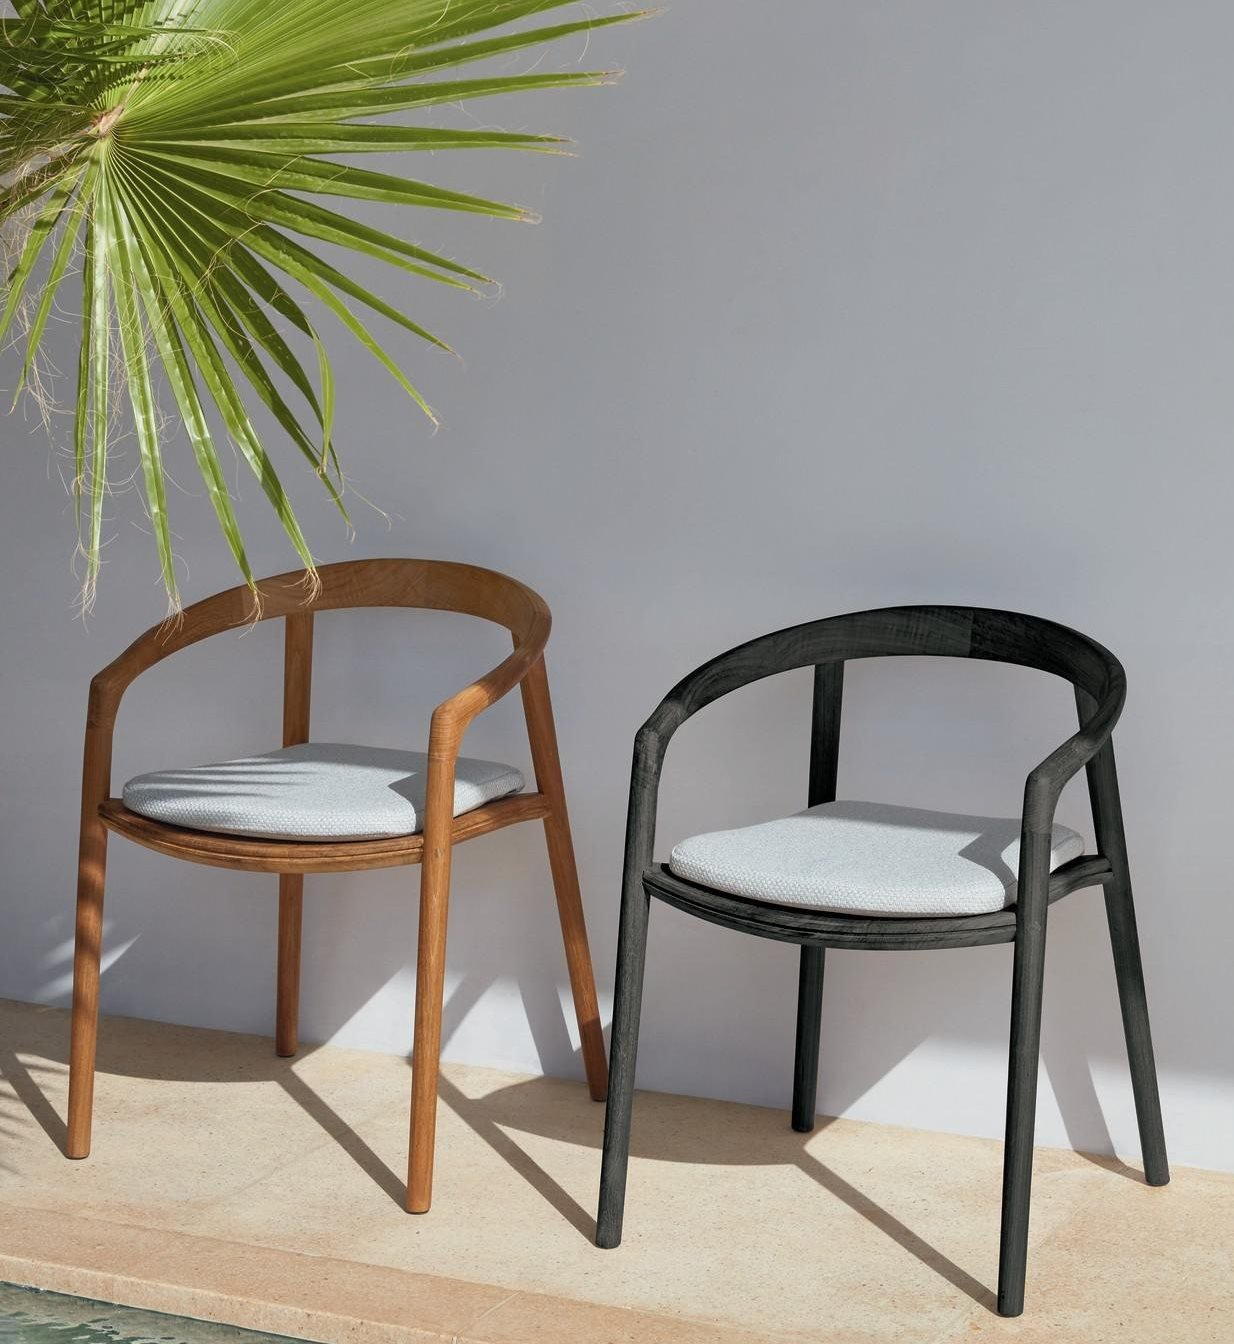 Solid Dining Chair from Manutti, designed by Lionel Doyen